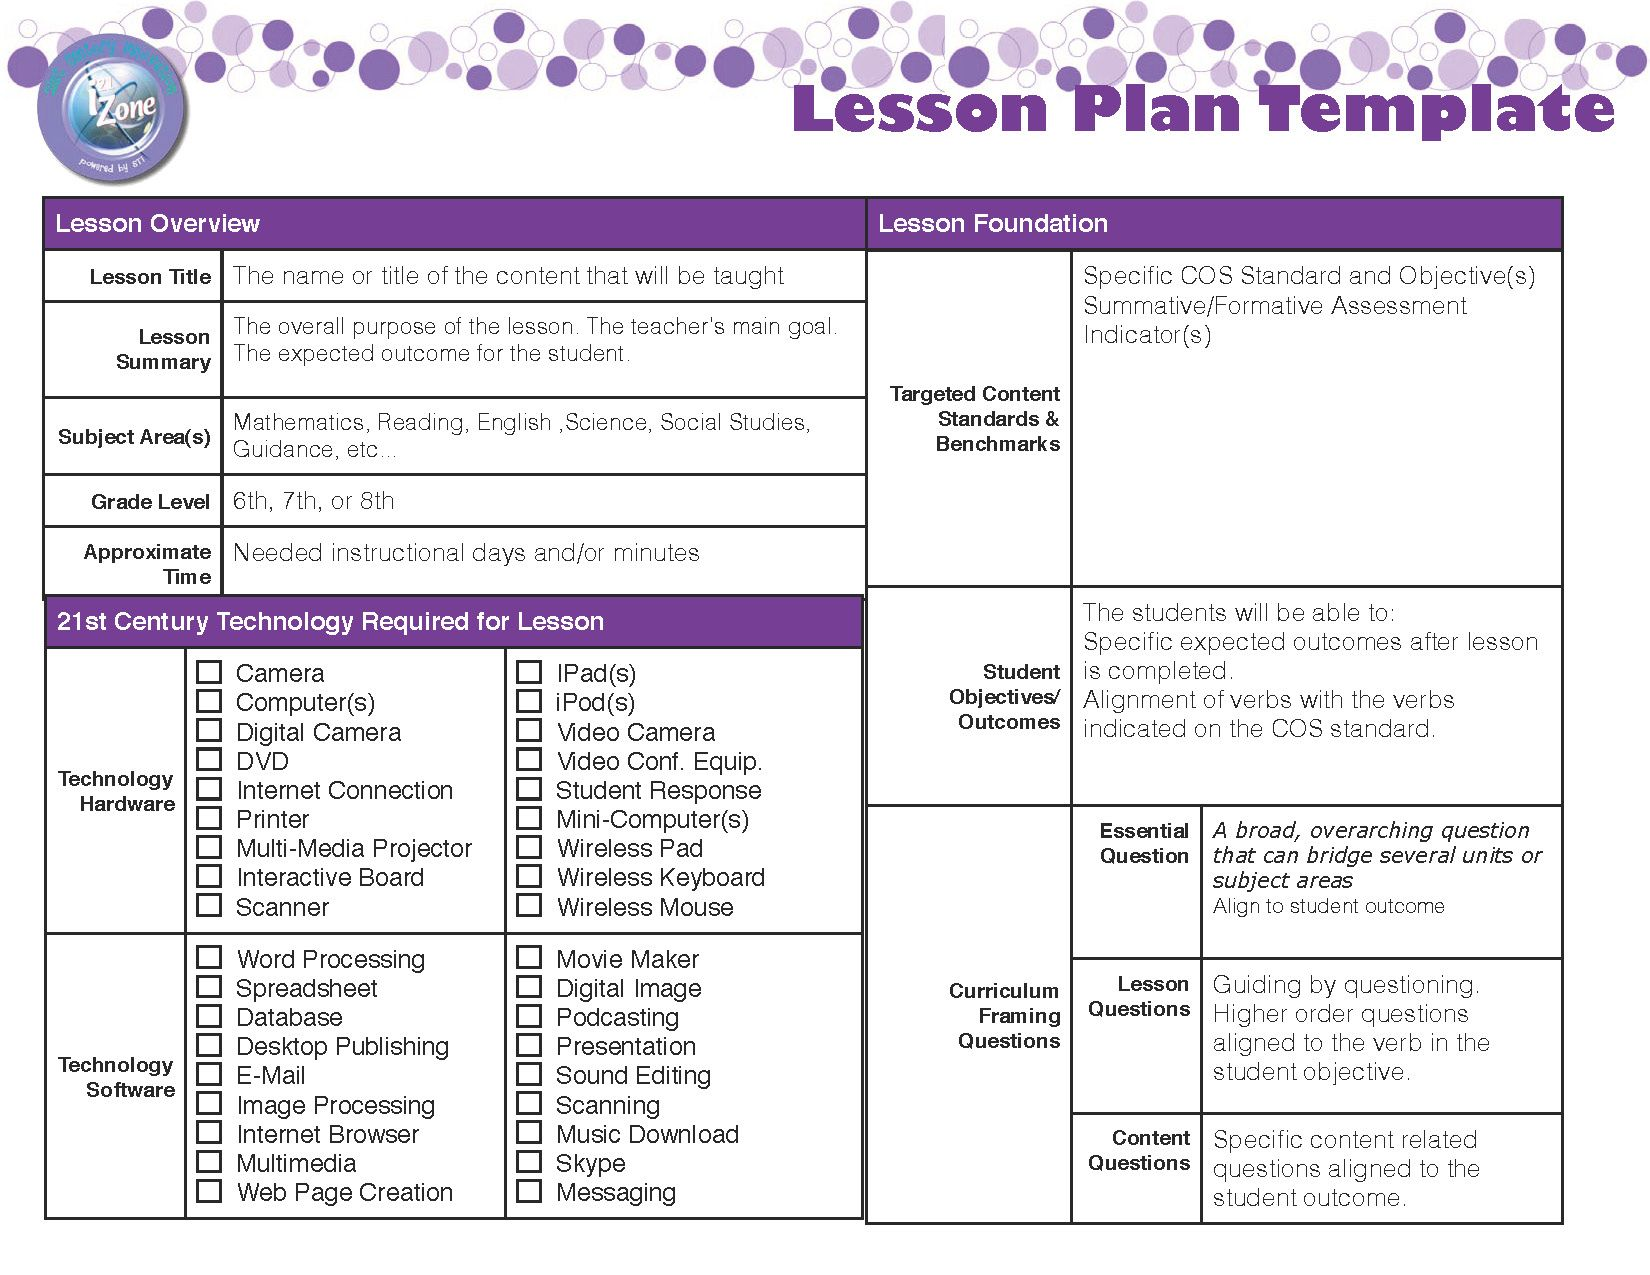 Lesson Plan Template  Writings On The WhiteboardAll School